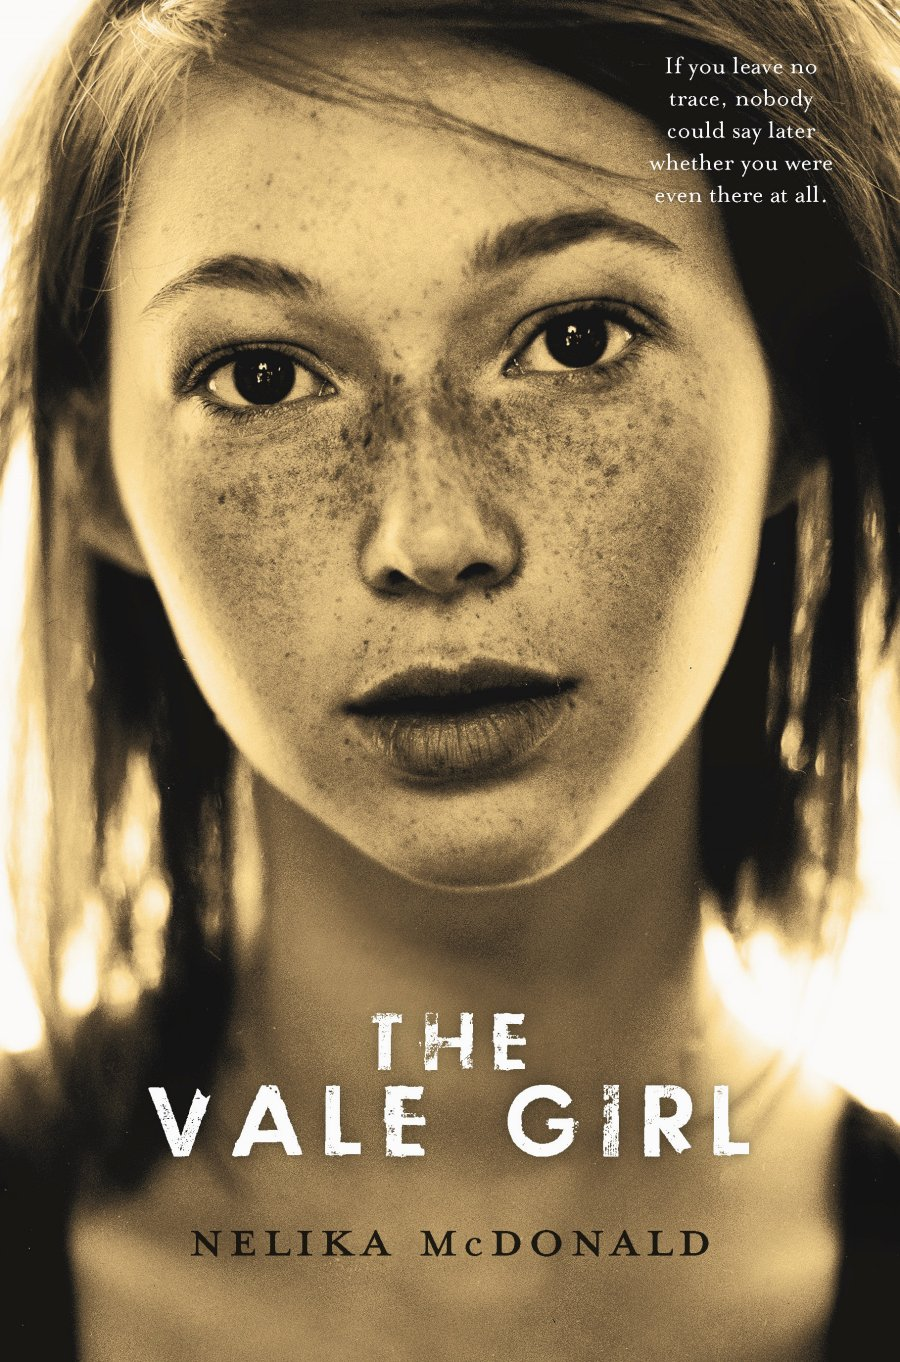 The Vale Girl - Pan Macmillan, 2013Fifteen-year-old Sarah Vale has gone missing in the small town of Banville. She's the daughter of the town prostitute so no one seems particularly concerned. No one cares except Tommy Johns, who loves Sarah Vale with all the unadulterated, tentative passion of a teenage boy. He galvanises the town's policeman Sergeant Henson and, together, they turn the town inside out, searching for the lost girl.A delicate and layered exploration of secrets and lies, forgotten children and absent parents, and the long shadows of the past.An extraordinary debut from a talented new writer.Interview: ABC Radio National, July 25, 2013